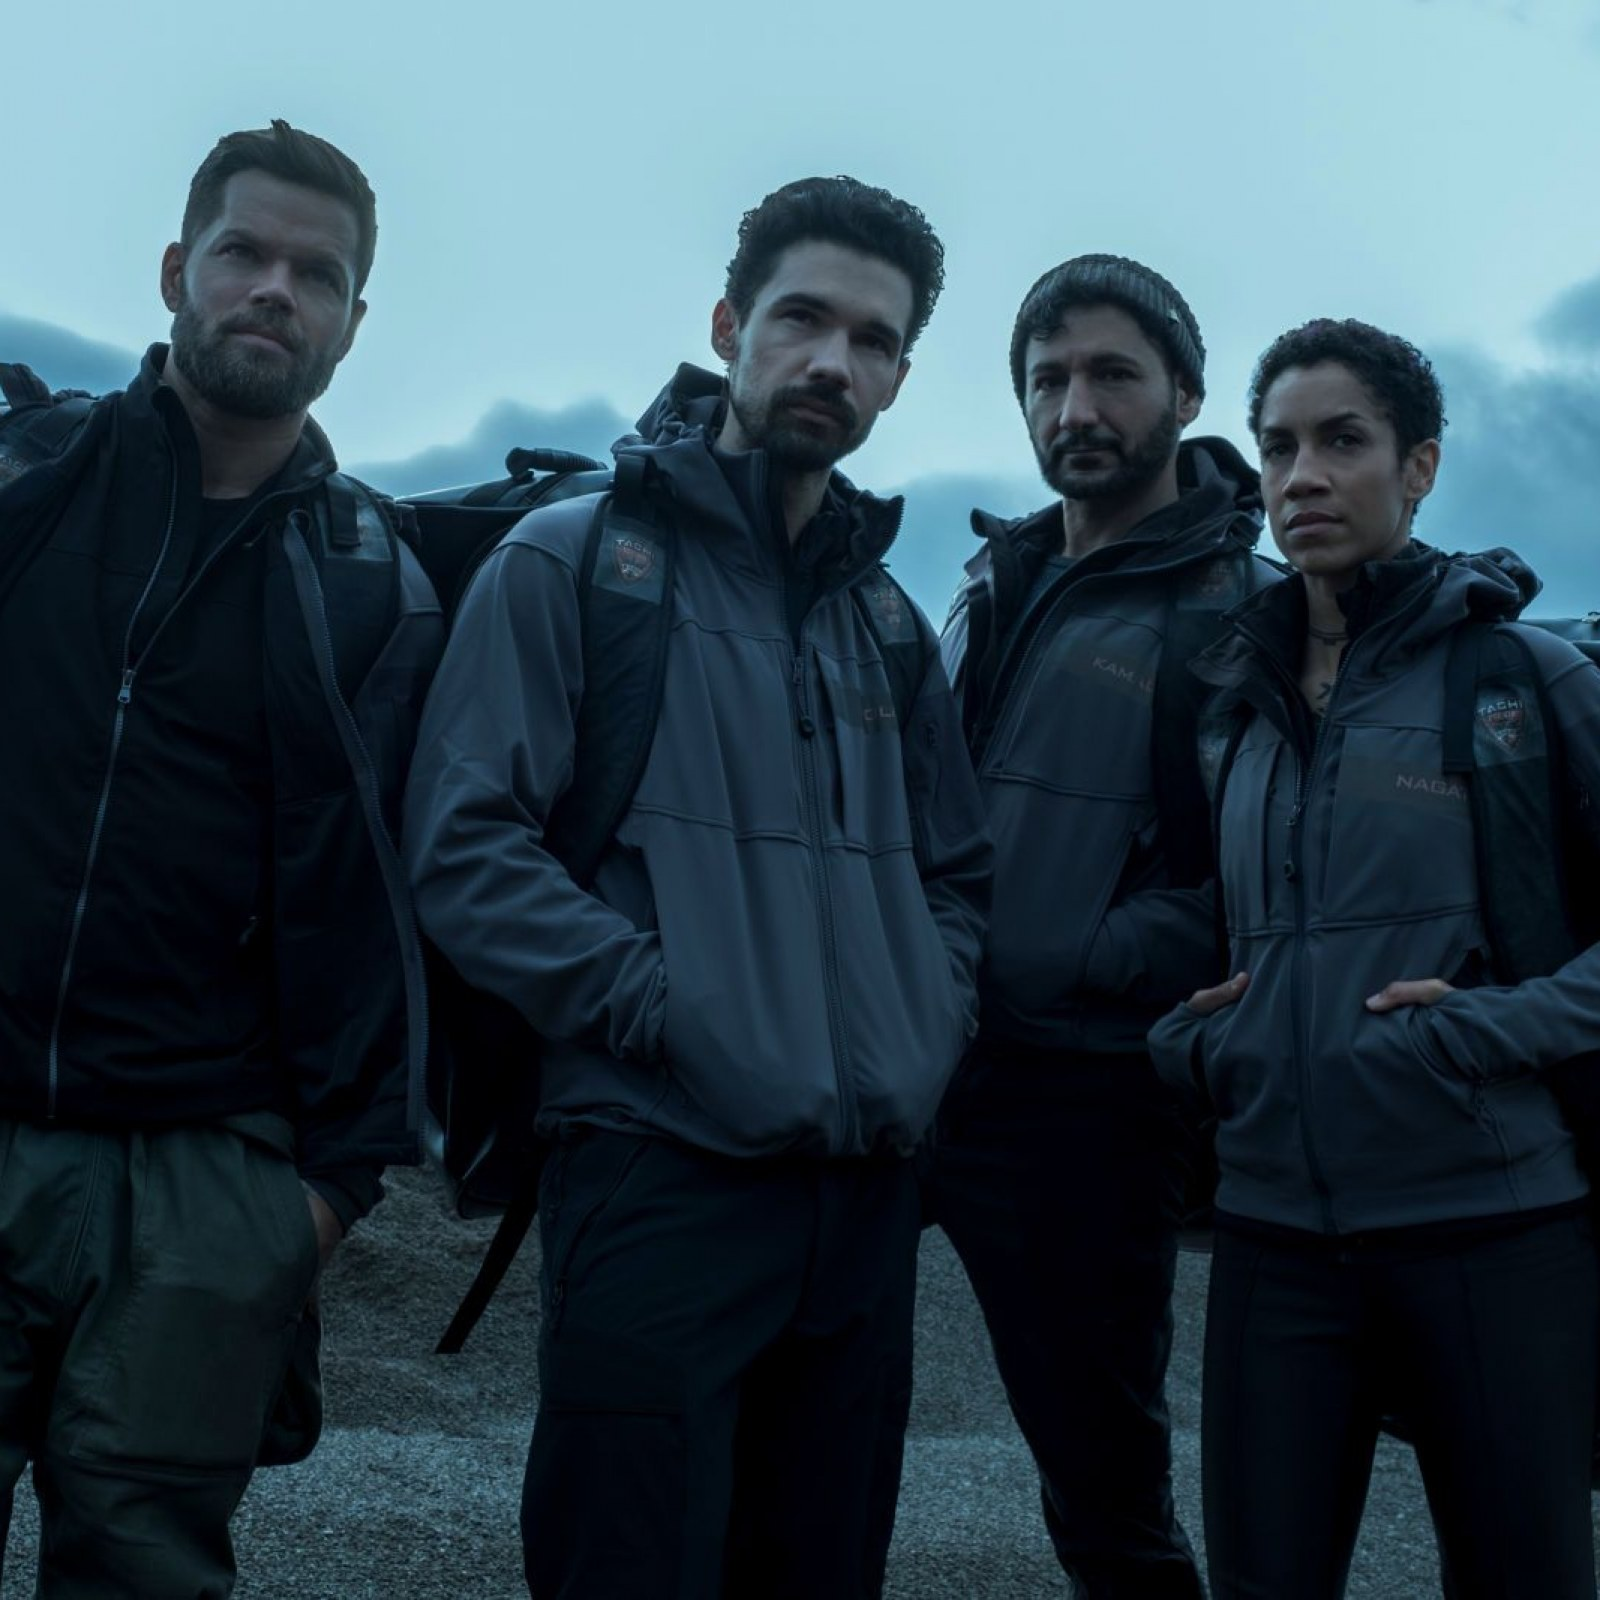 The Expanse season 4 preview - New Terra with Amal James Naomi and Amos